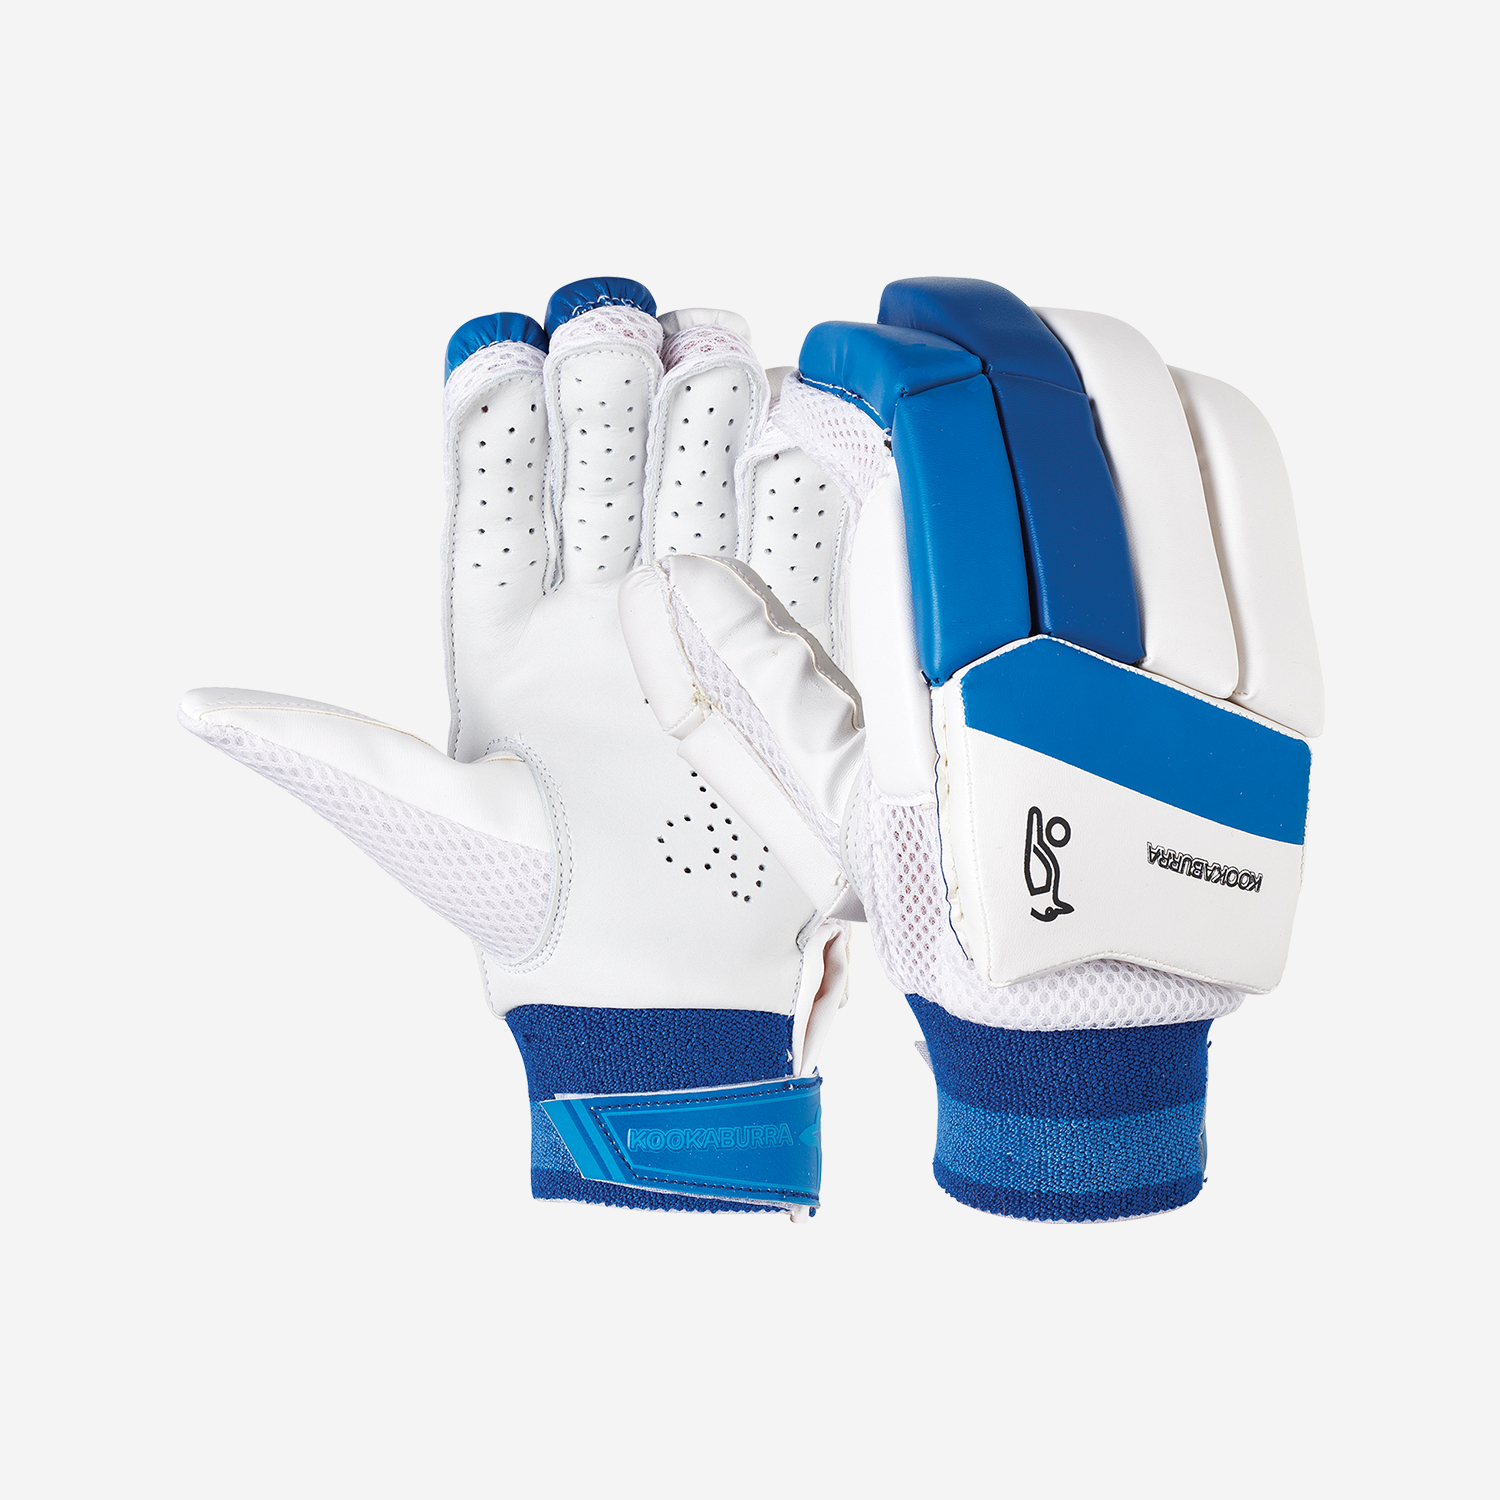 Pace Pro 5.0 Batting Gloves